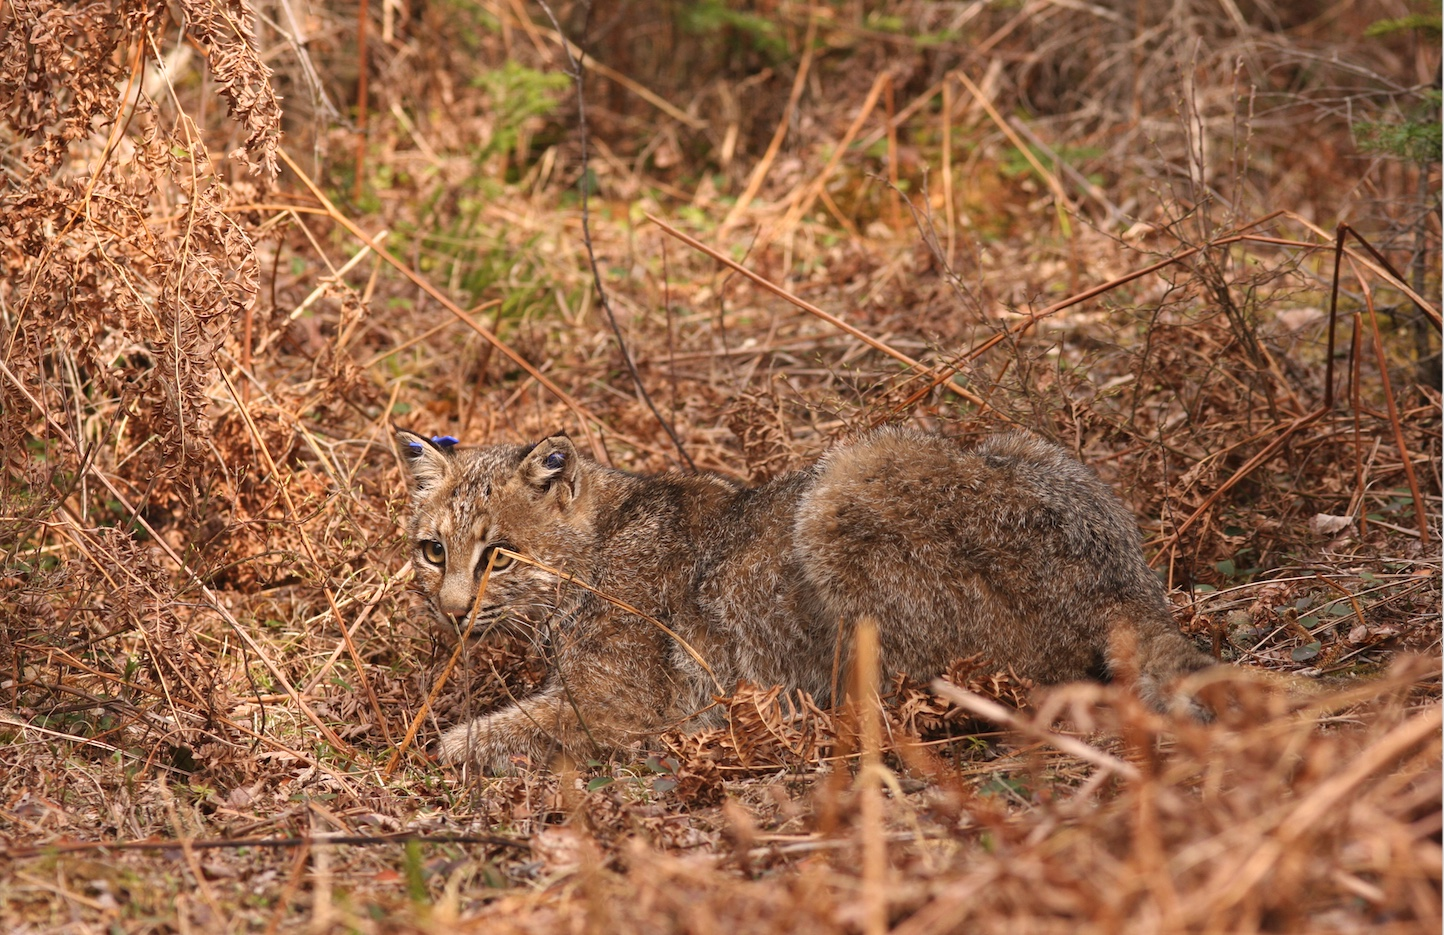 This bobcat has ear tags which helps researchers identify it.